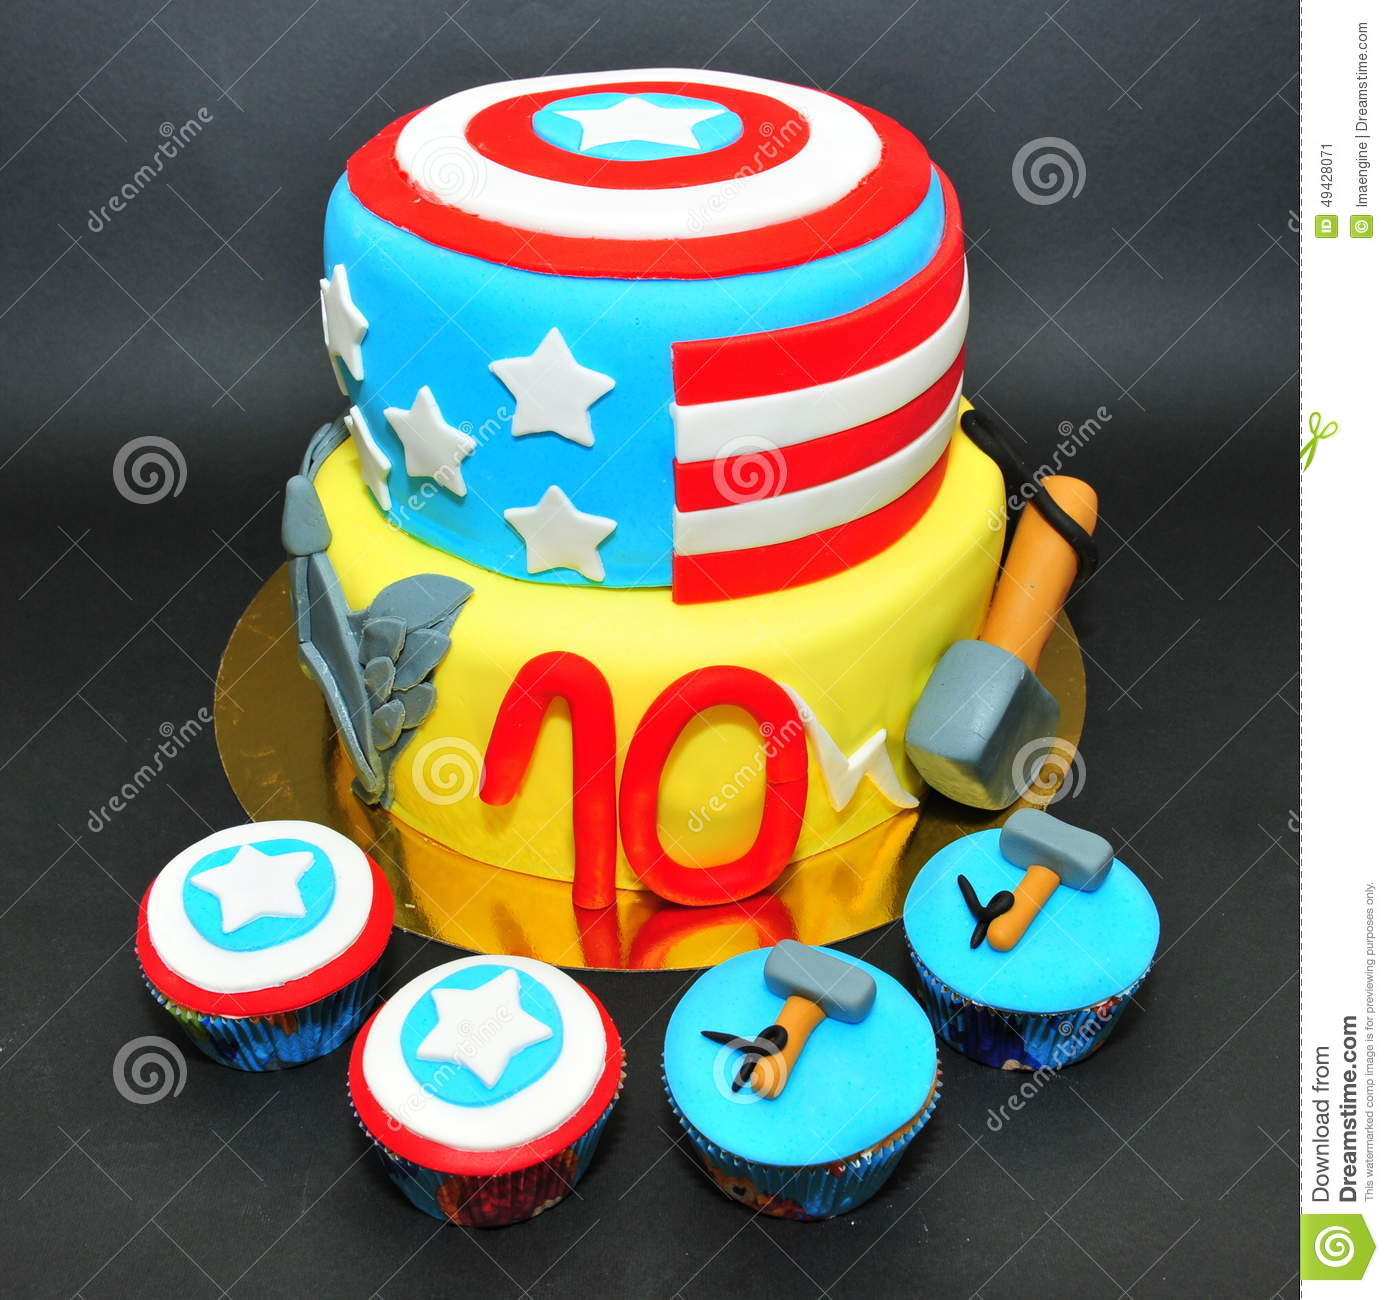 Thor And Captain America Cake And Cupcakes Editorial Photo